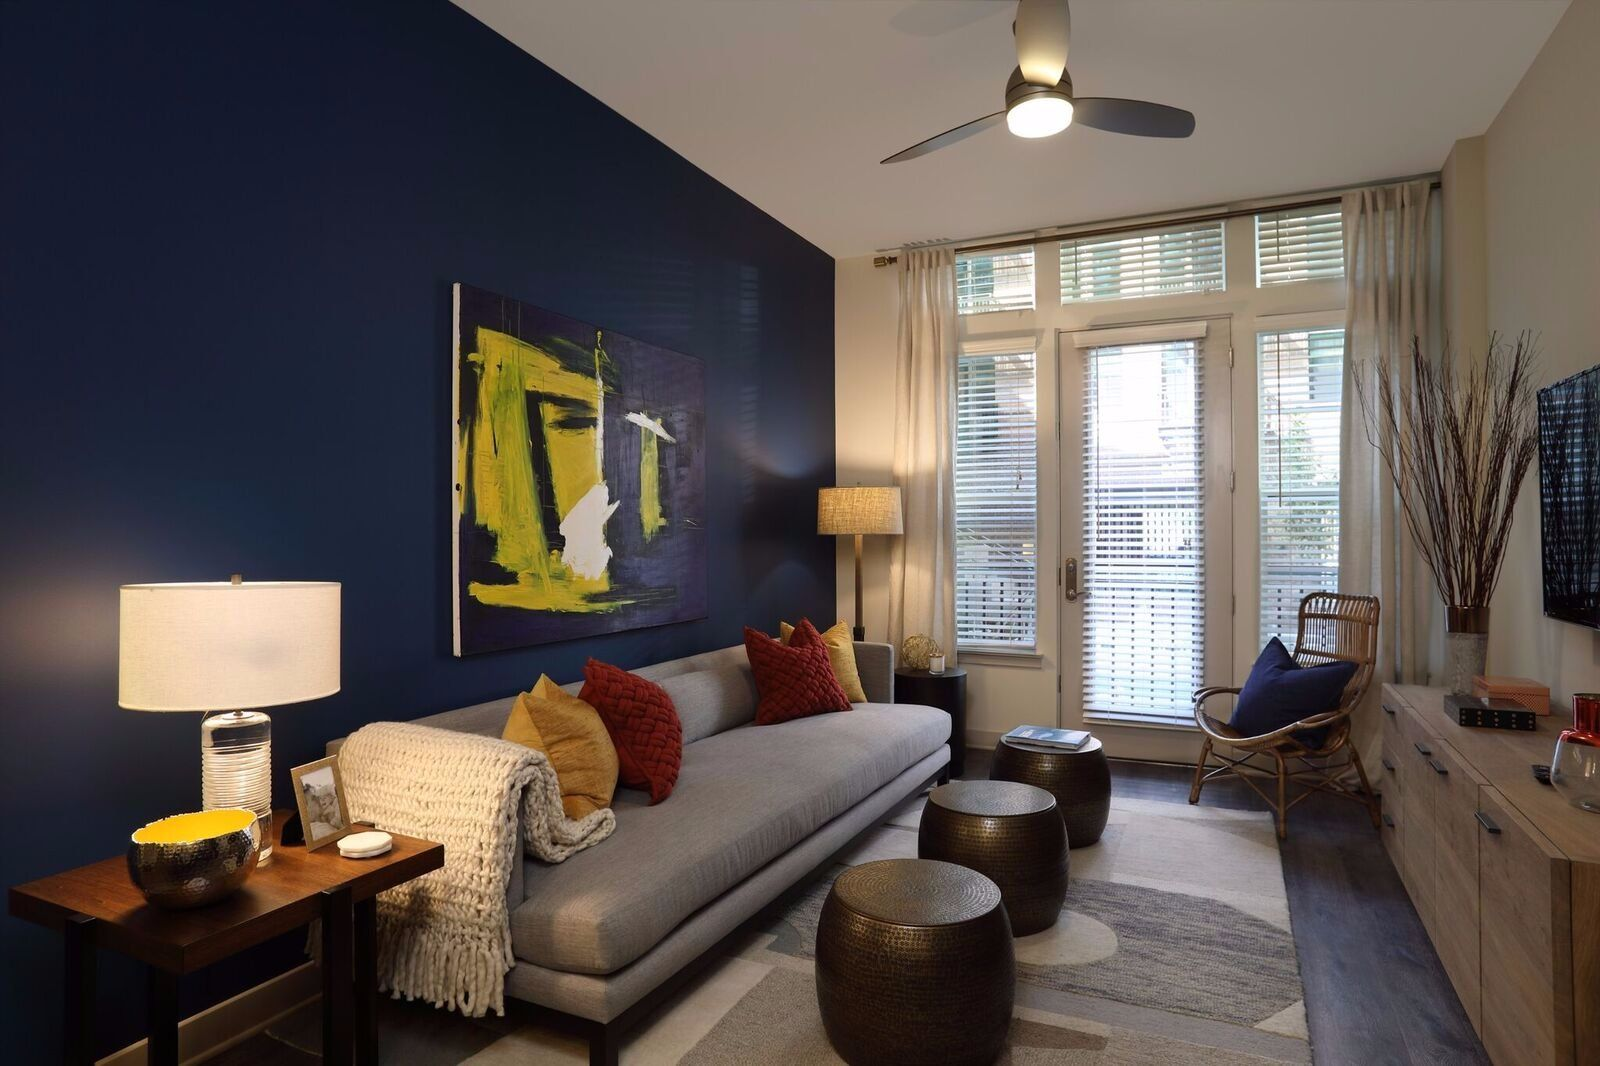 Apartment living area with blue accent wall and furniture